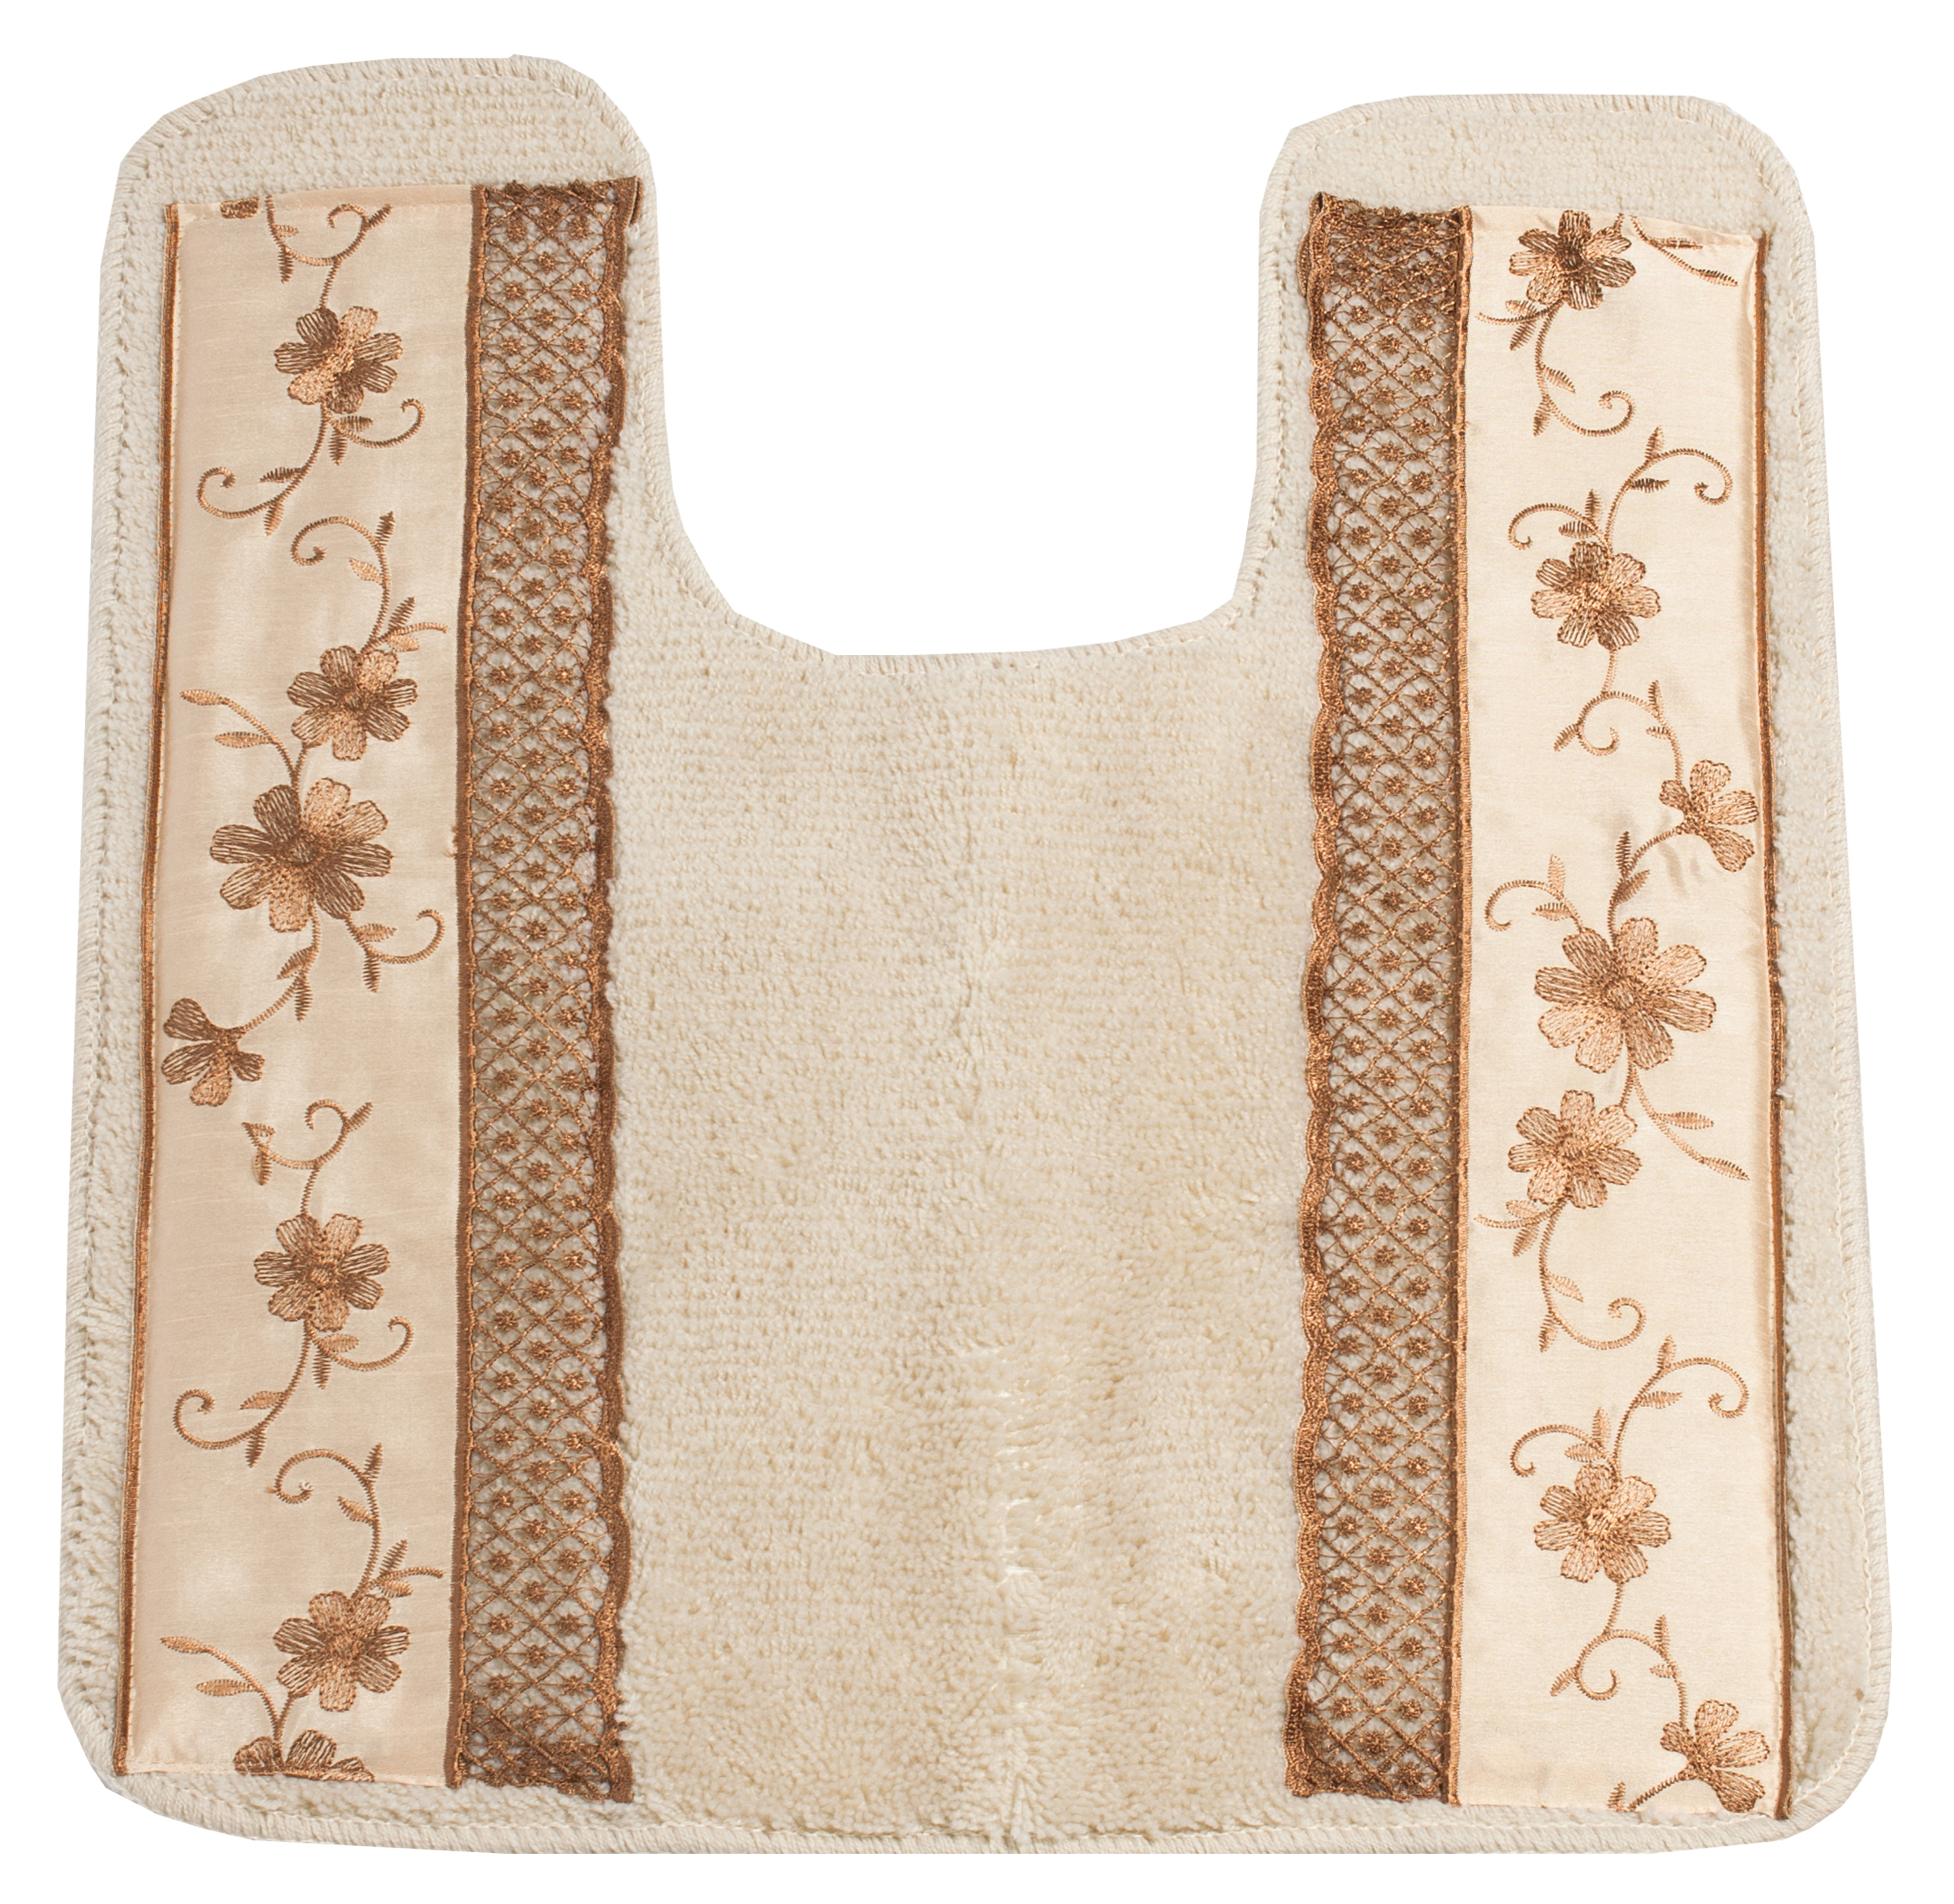 Popular Bath Veronica Bath Collection Bathroom Contour Commode Rug